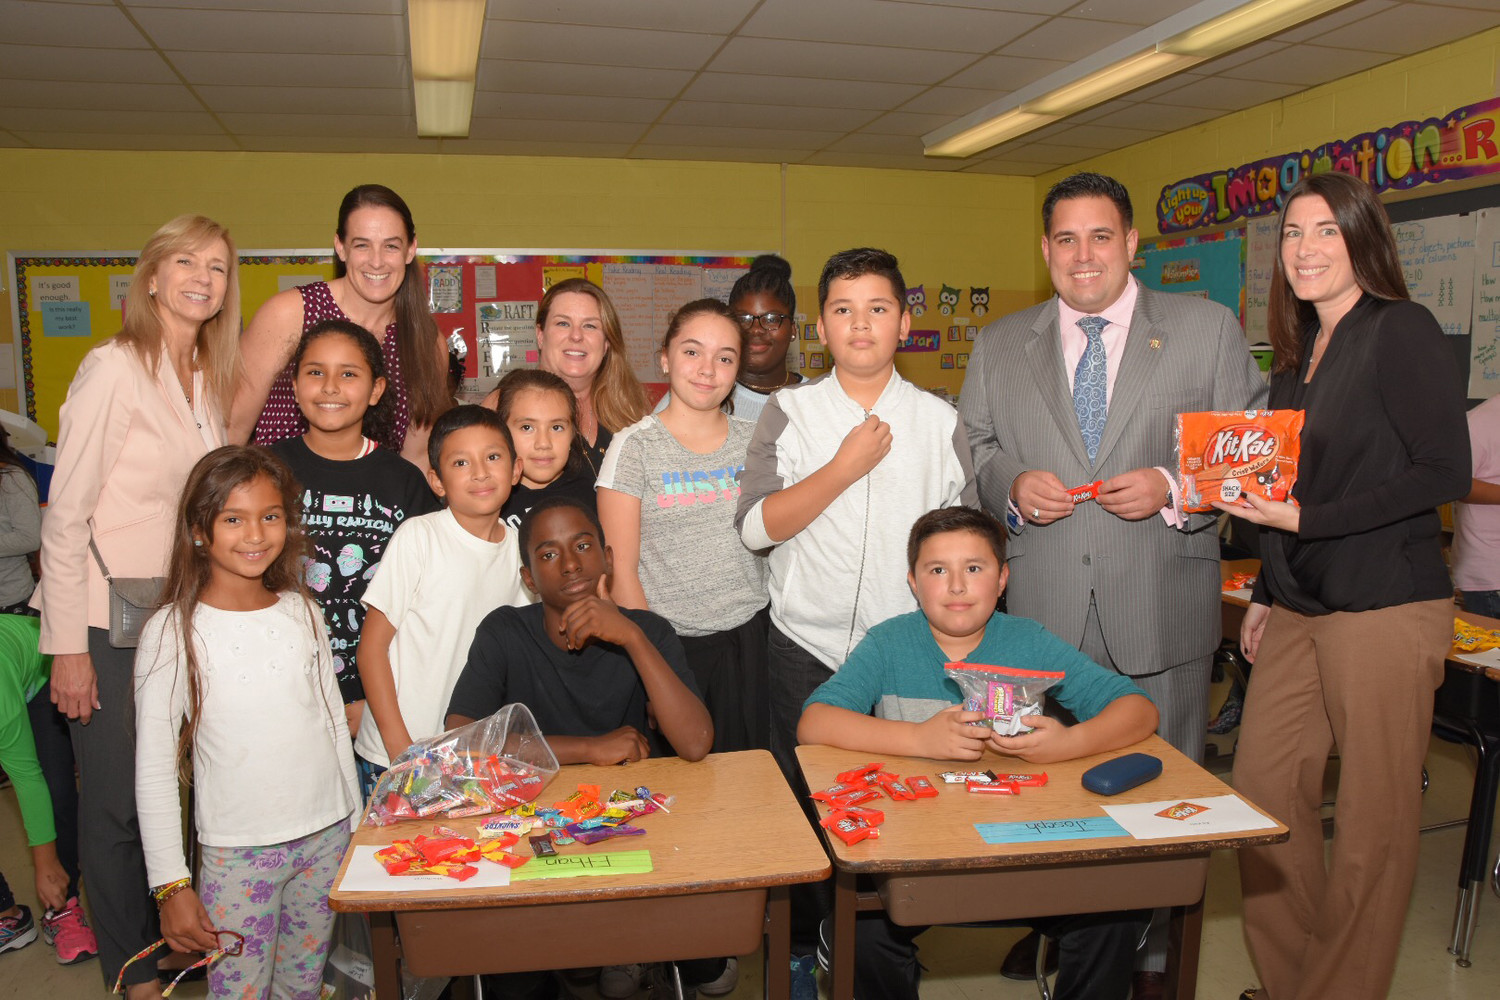 U.S. military personnel will be receiving candy from Lawrence Elementary School students through Operation Gratitude. Standing from left were Rina Beach, Jacqueline Beckmann, Lisa Virula, Mike Arreaga, Bridgette Gordilla, Jennifer Talenti, Gina Pasquariello, Kenniyah Wallace, Christopher Cornejo, Councilman Anthony D'Esposito and Kathleen McDonough. In front from left were Frankie Cancelliere, JaWan Groover and Carlos Reyes.